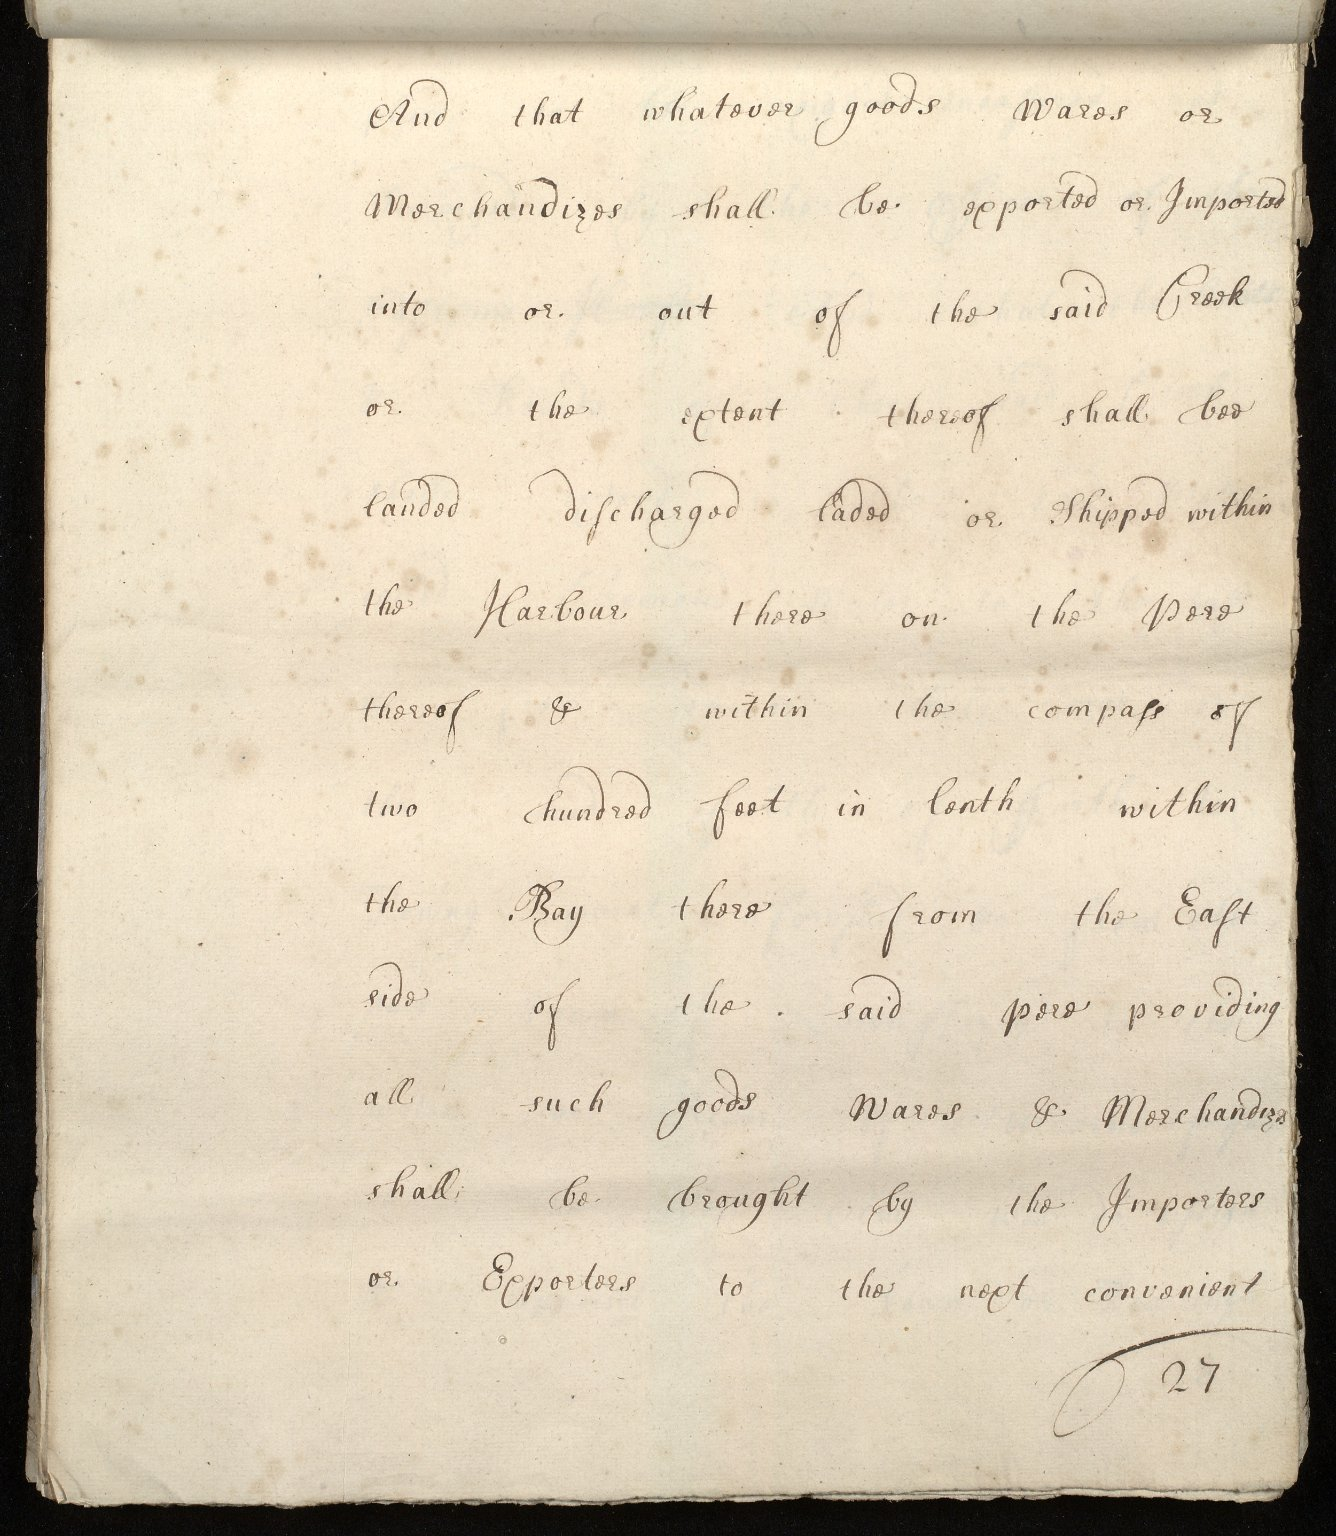 [Commission by Queen Anne to John Adair and others to appoint the town of Borrowstounness (Bo'ness) to be a port and to fix the bounds thereof] [27 of 39]